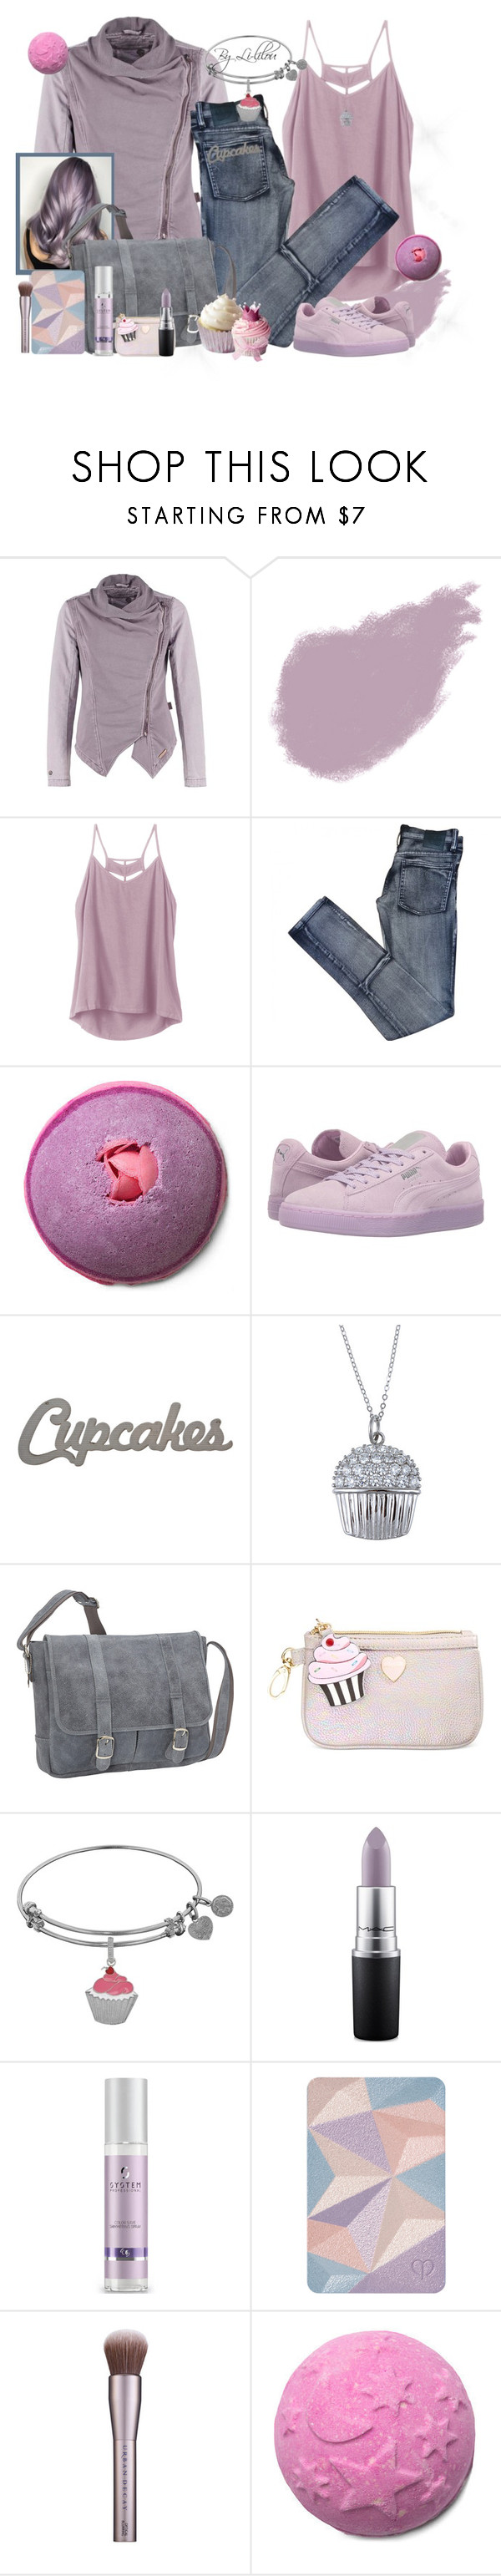 """Cupcakes party!"" by li-lilou ❤ liked on Polyvore featuring Bobbi Brown Cosmetics, RVCA, Cheap Monday, Puma, La Preciosa, David King & Co., Betsey Johnson, MAC Cosmetics, Wella and Clé de Peau Beauté"